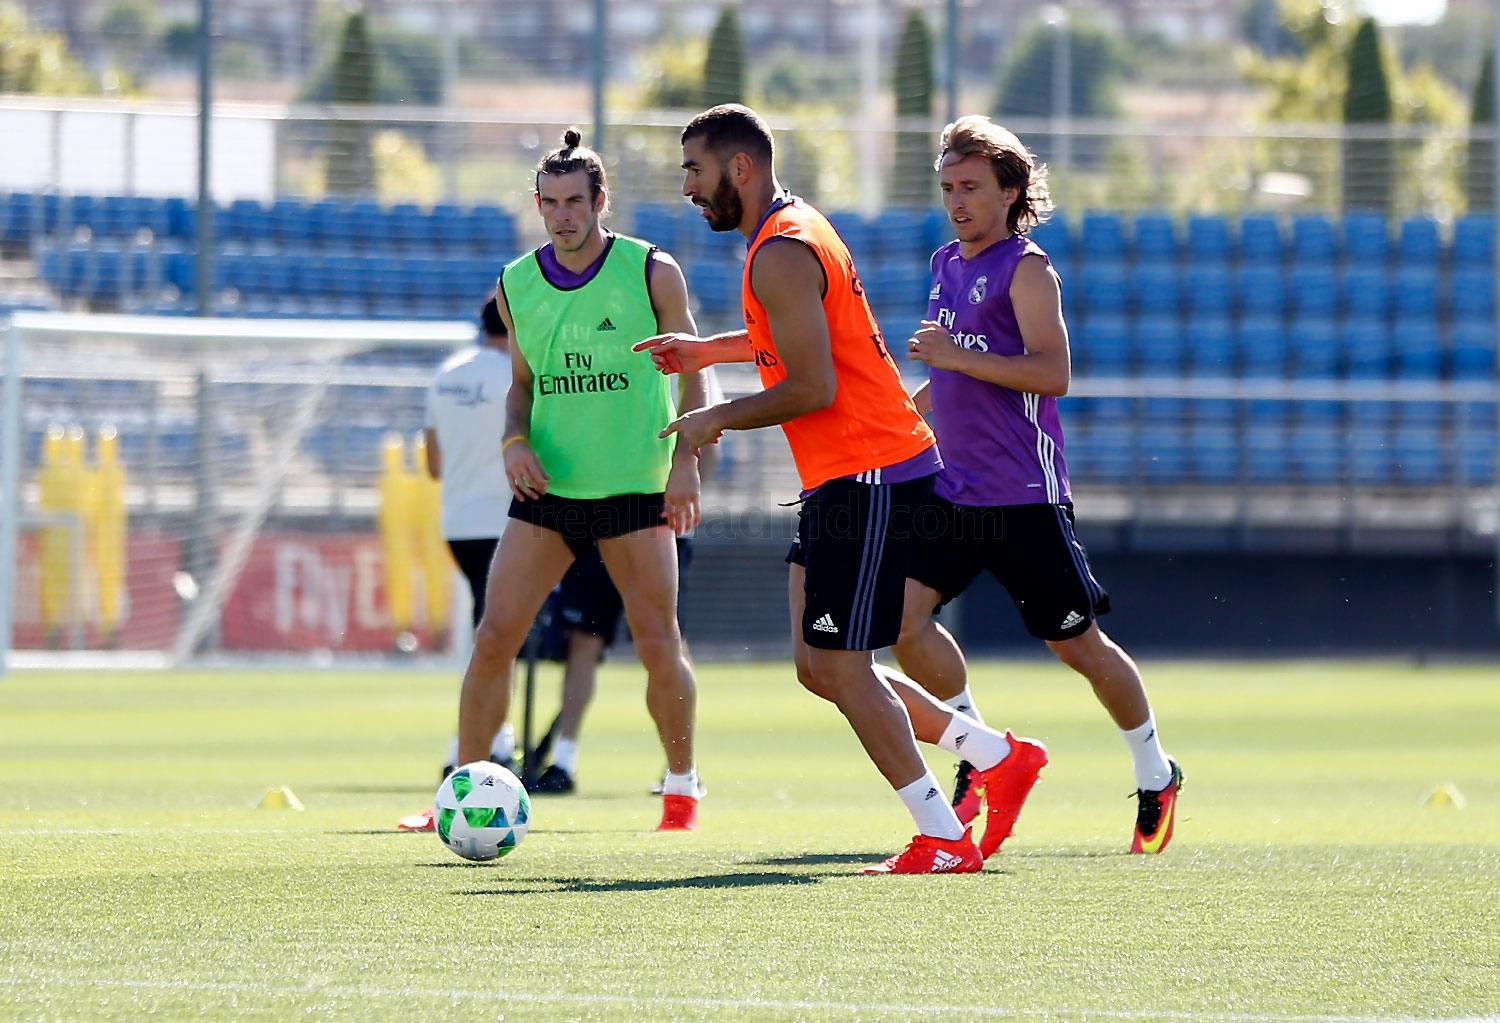 Real Madrid - Entrenamiento del Real Madrid - 06-08-2016